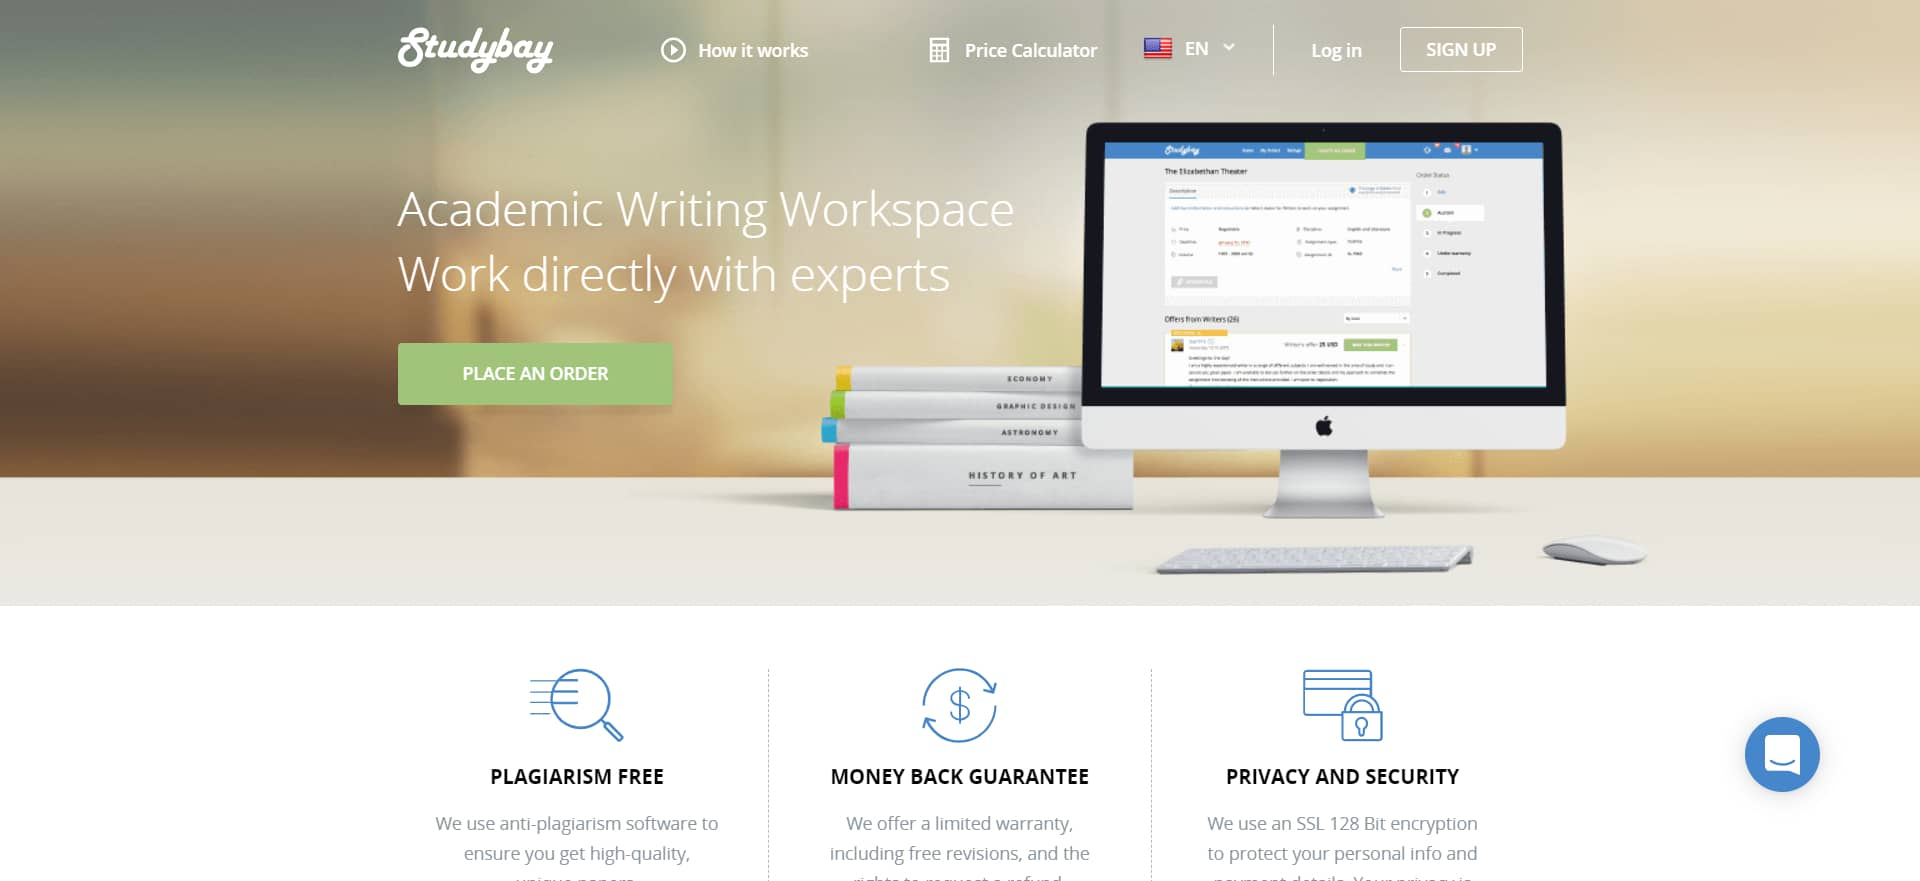 StudyBay Review 2020: We Test The Service For You